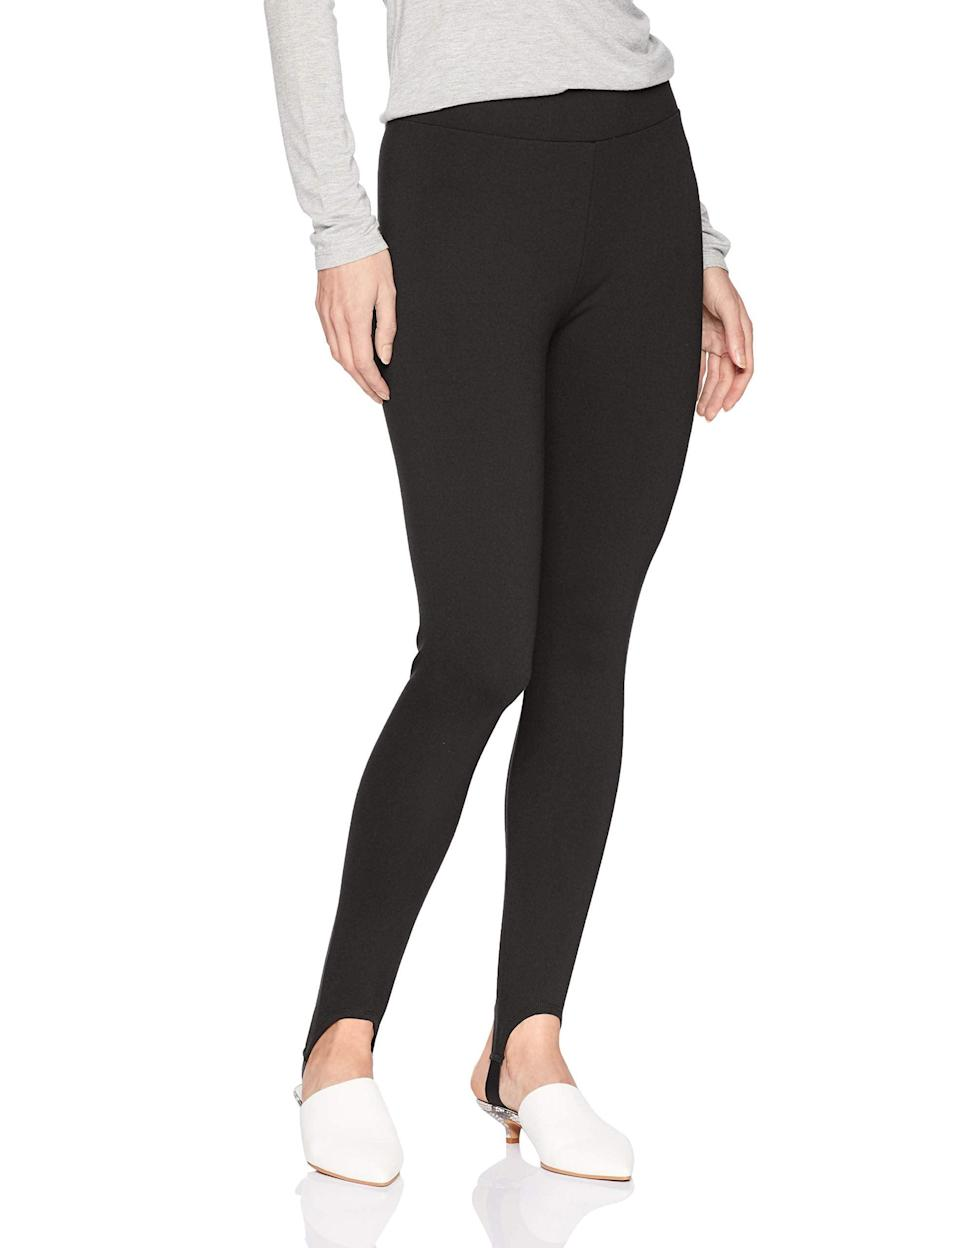 """<br><br><strong>Daily Ritual</strong> Stirrup Ponte Legging, $, available at <a href=""""https://amzn.to/2Cd3rgt"""" rel=""""nofollow noopener"""" target=""""_blank"""" data-ylk=""""slk:Amazon"""" class=""""link rapid-noclick-resp"""">Amazon</a>"""